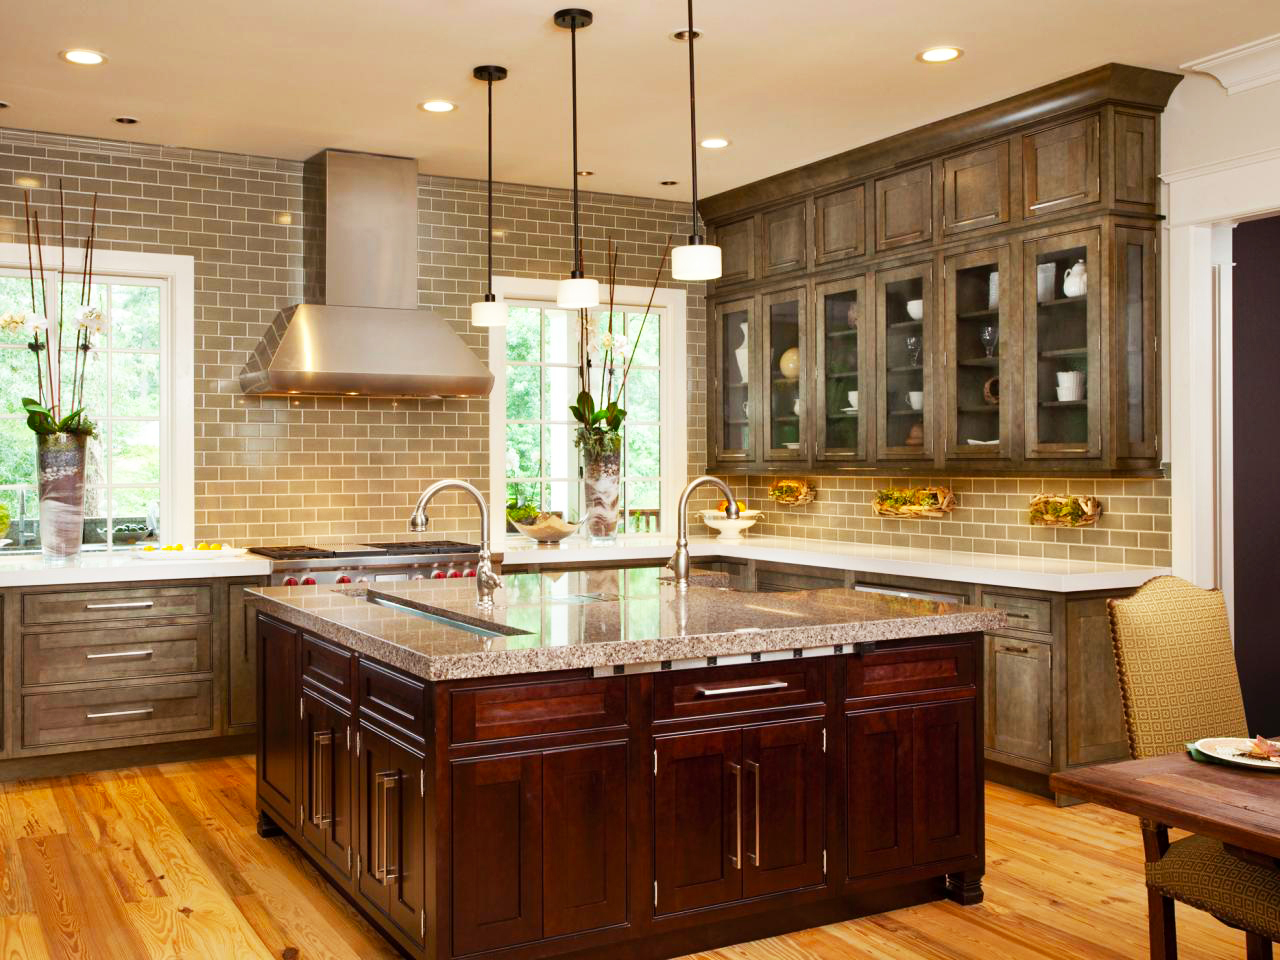 custom-kitchen-cabinets-remodel-design-with-large-square-wood-kitchen-island-quartz-countertops-also-modern-metal-kitchen-sink